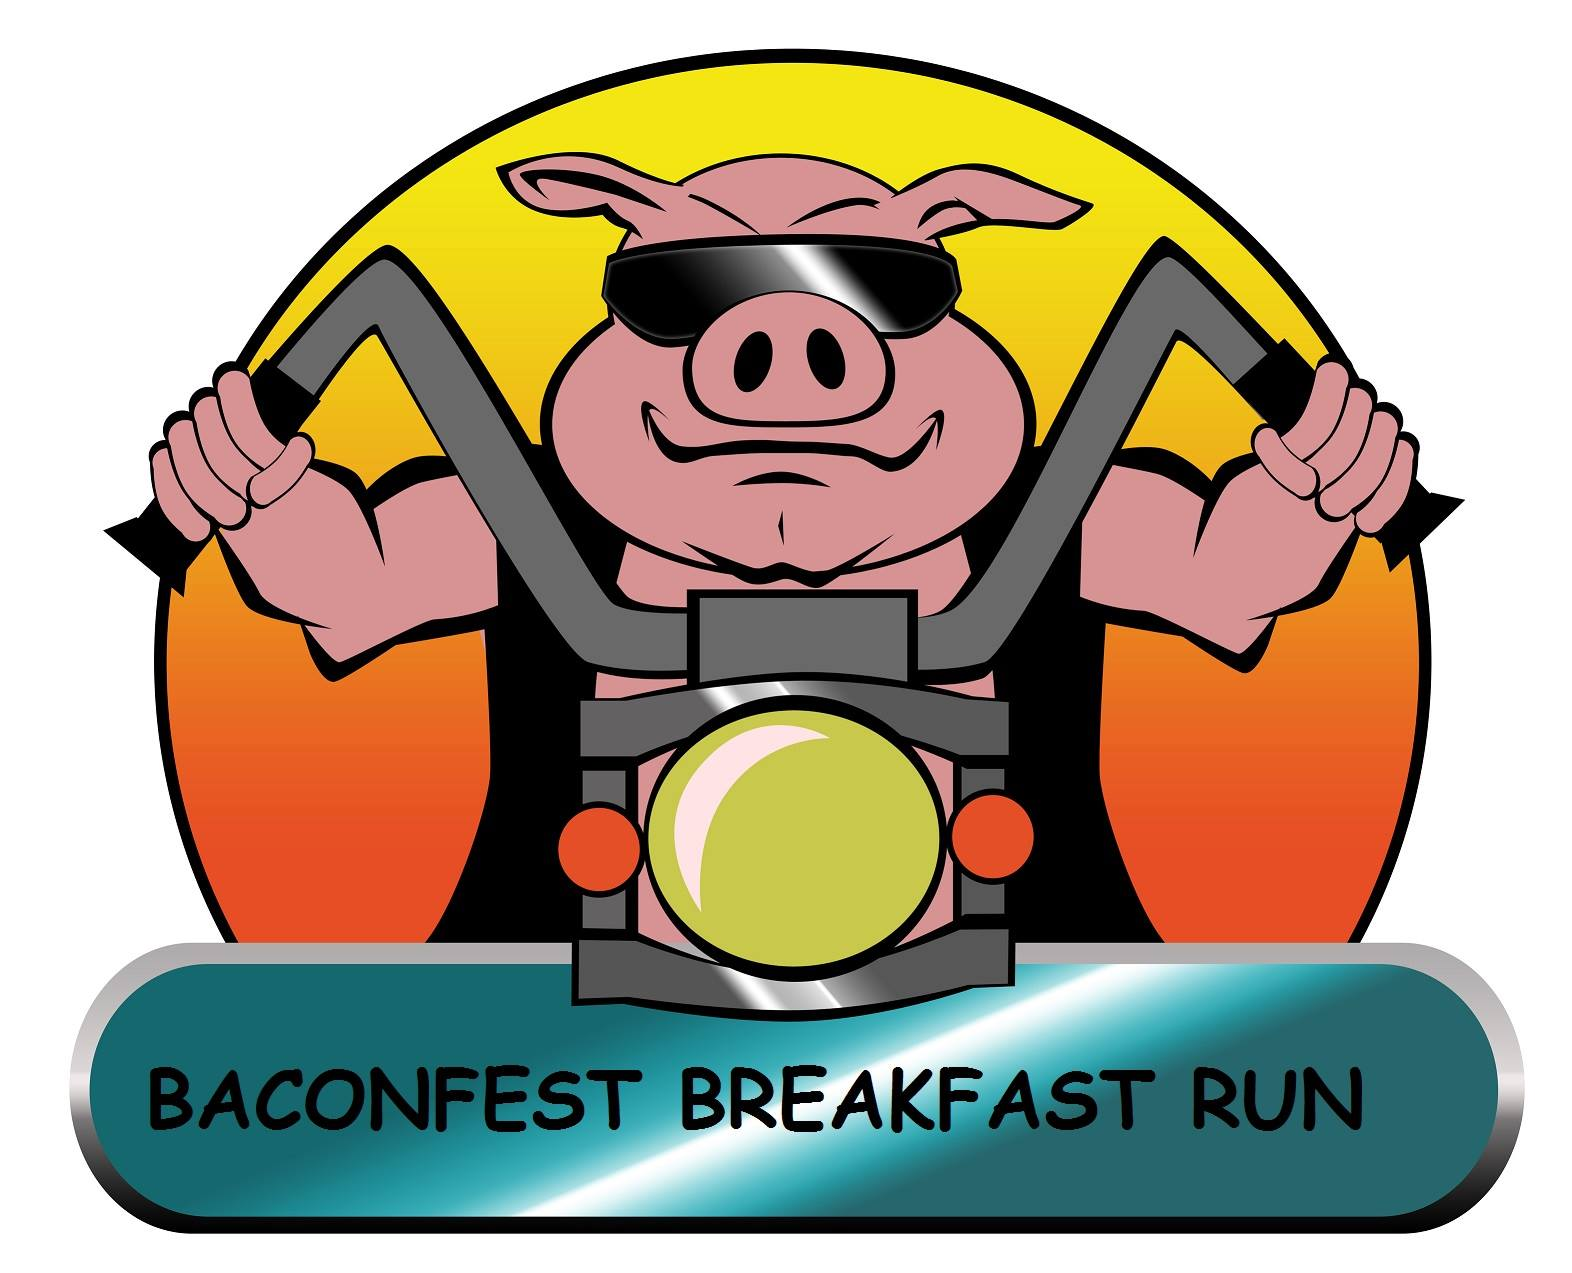 Baconfest 2017 Charity Bike Run in Lucan, Ontario on Saturday, July 8, 2017